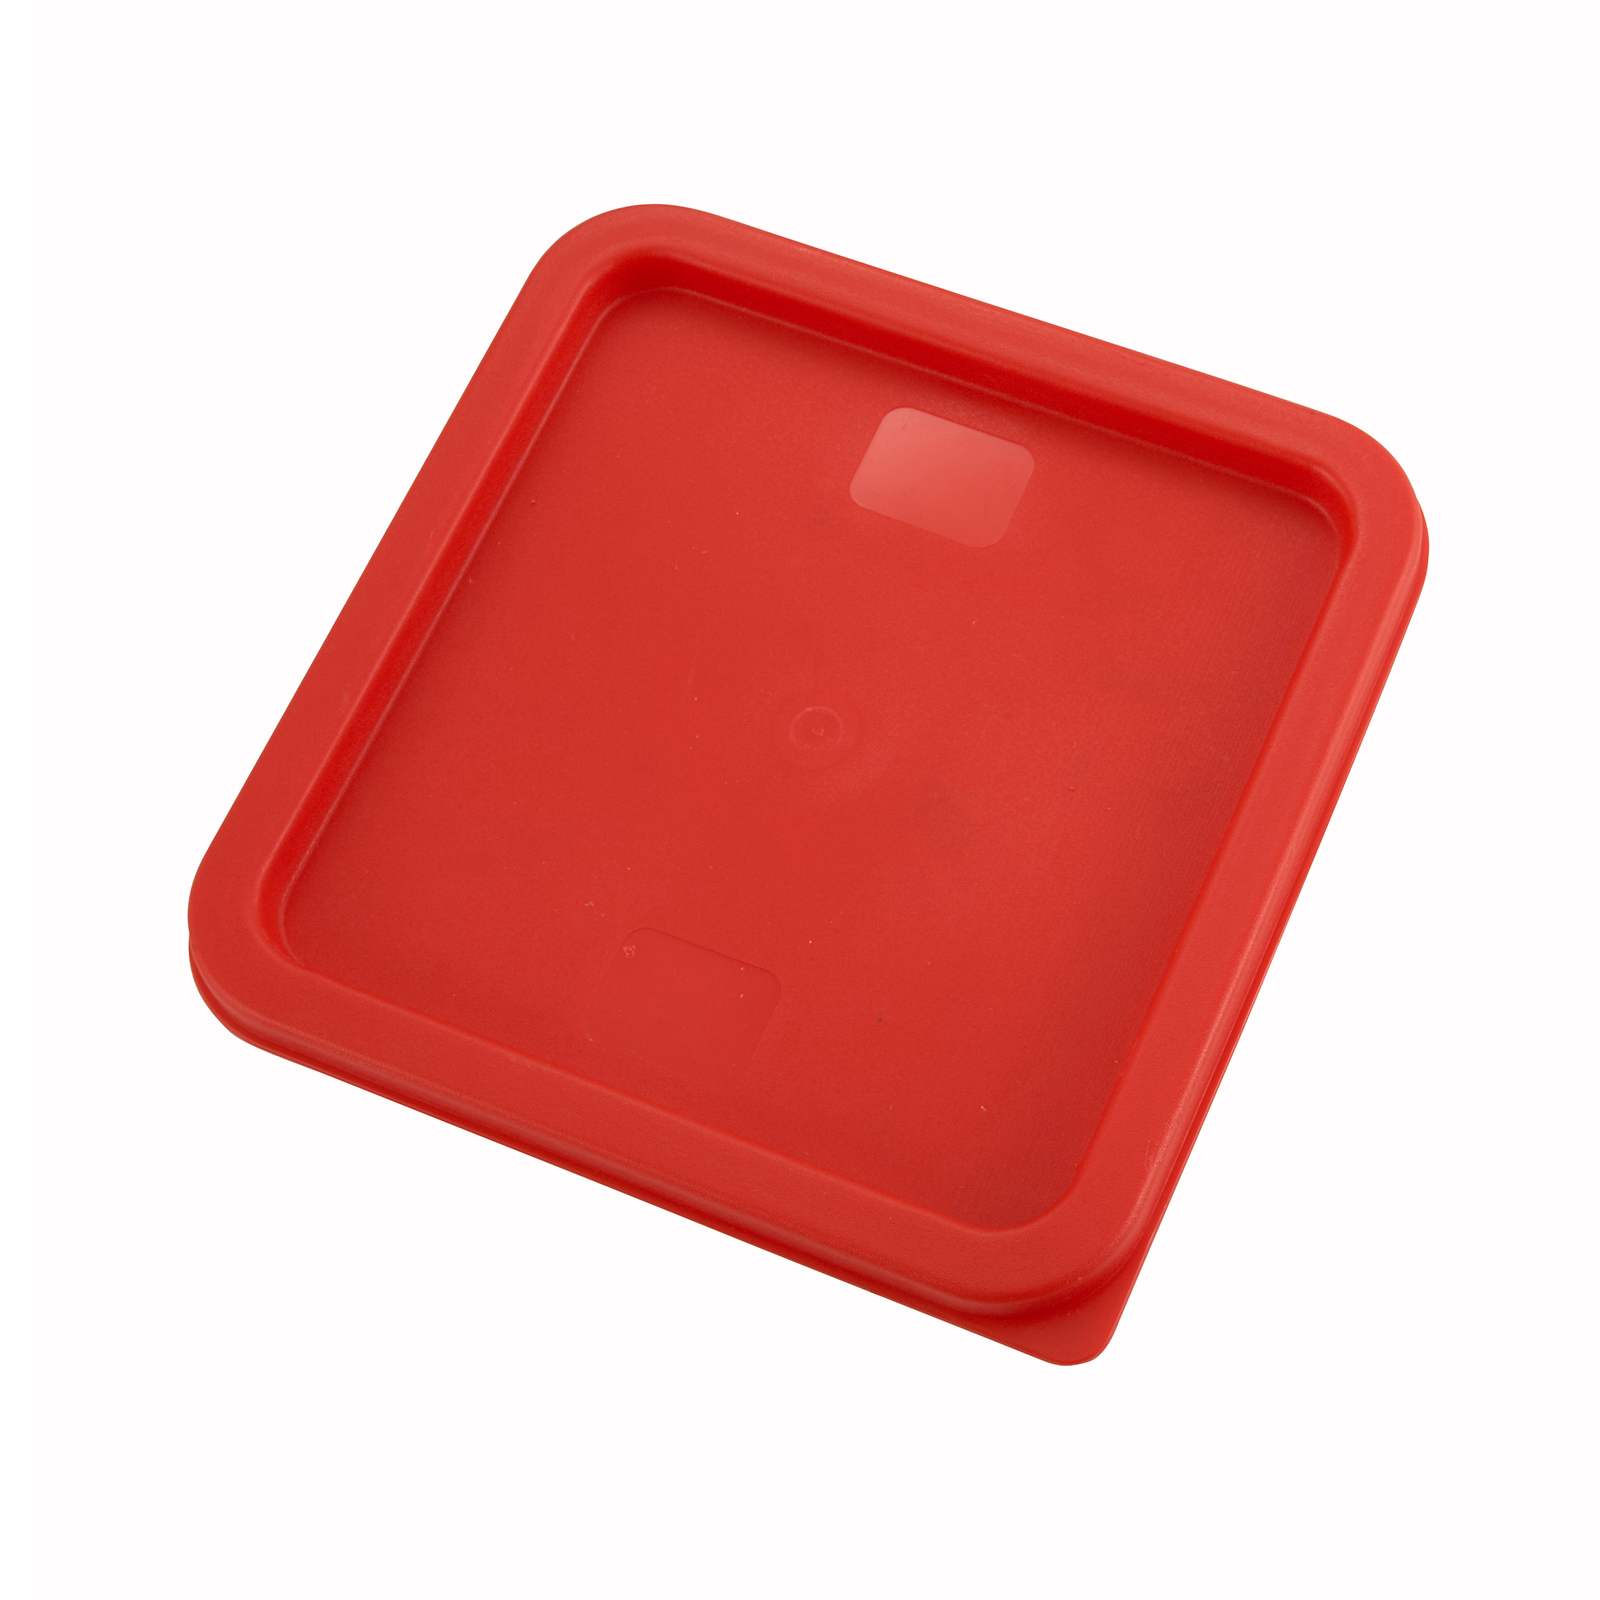 Winco PECC-68 food storage container cover